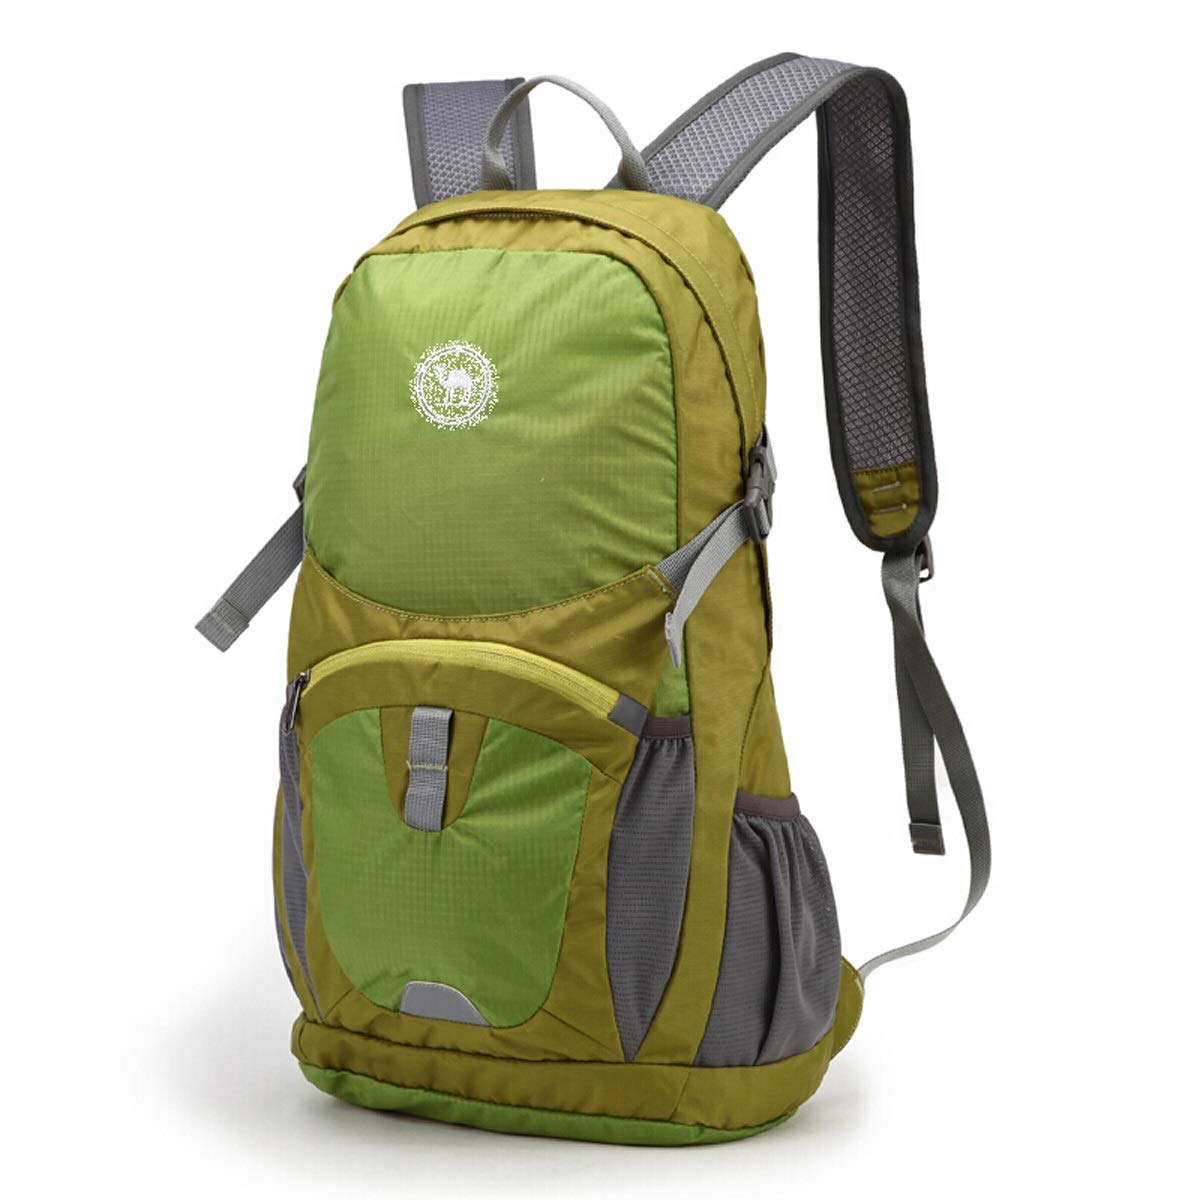 Shubiao Waterproof Sports Backpack Casual Carrying Knapsack Light Folding Mountaineering Bag Outdoor Travel Rucksack